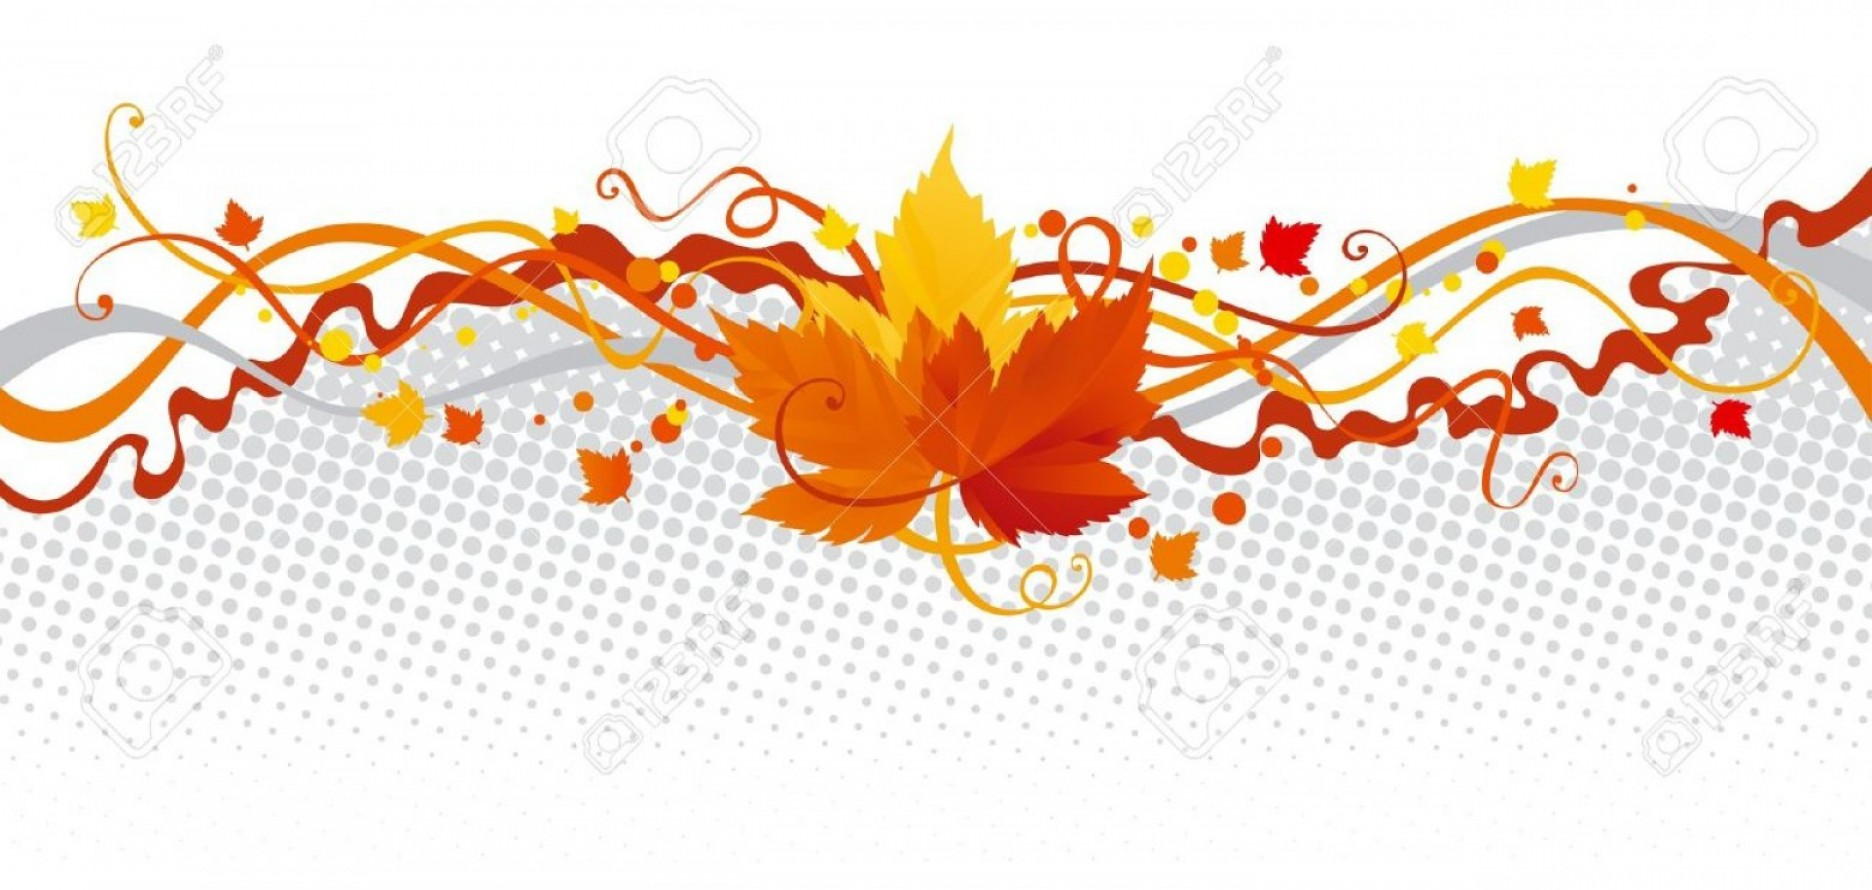 Thanksgiving Border Vector: Photoleaves Border Vector Abstract Border With Autumn Leaves